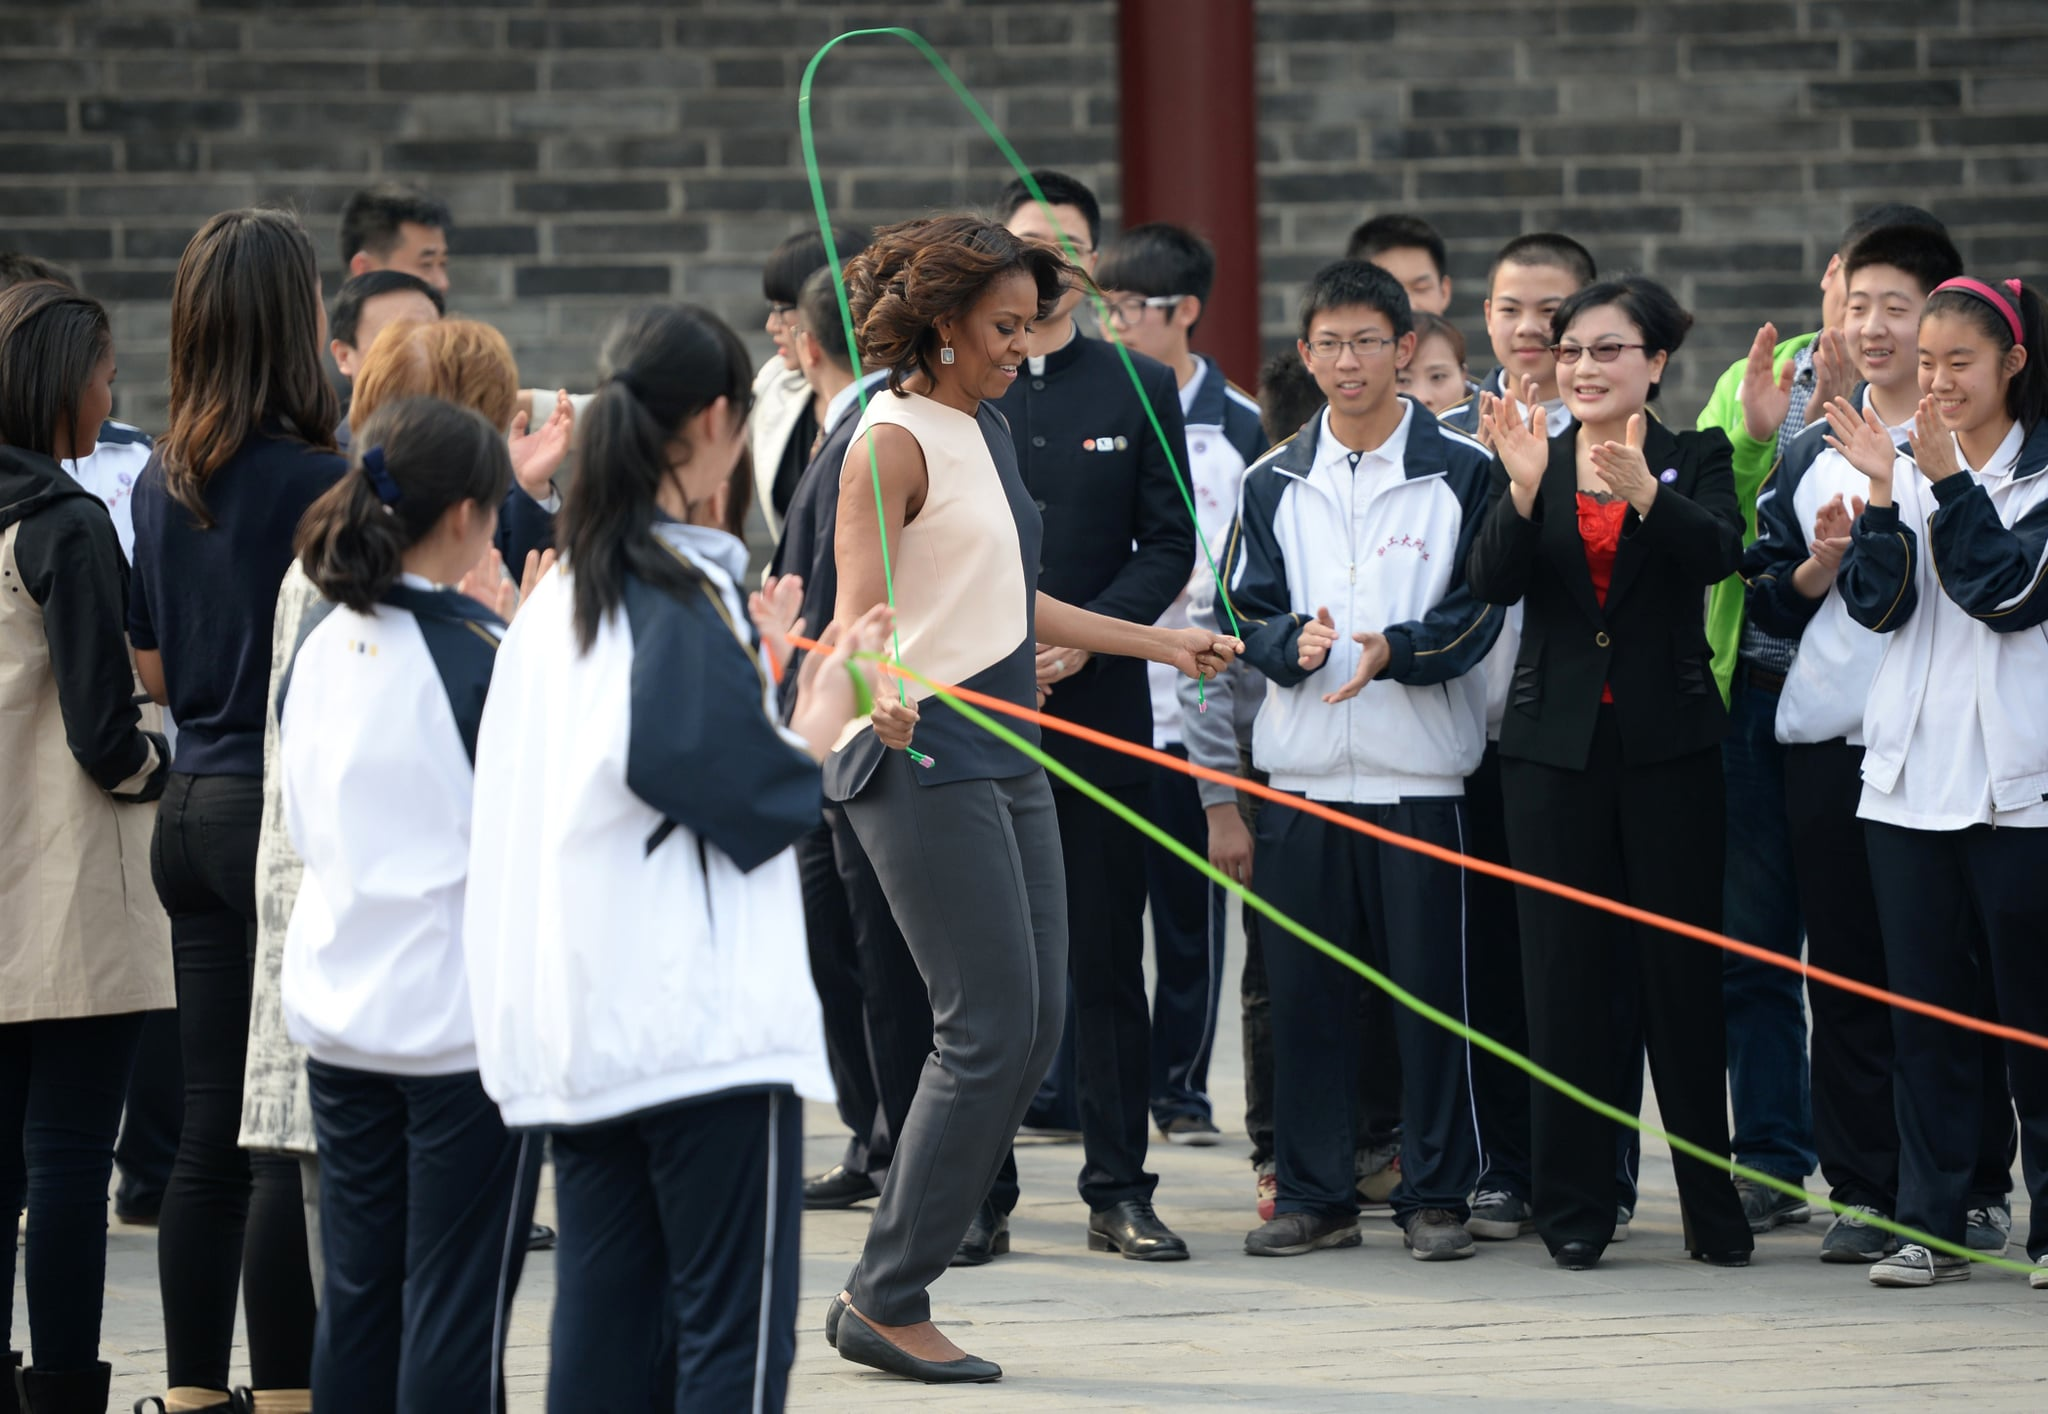 Michelle had the crowd applauding while she jumped rope.